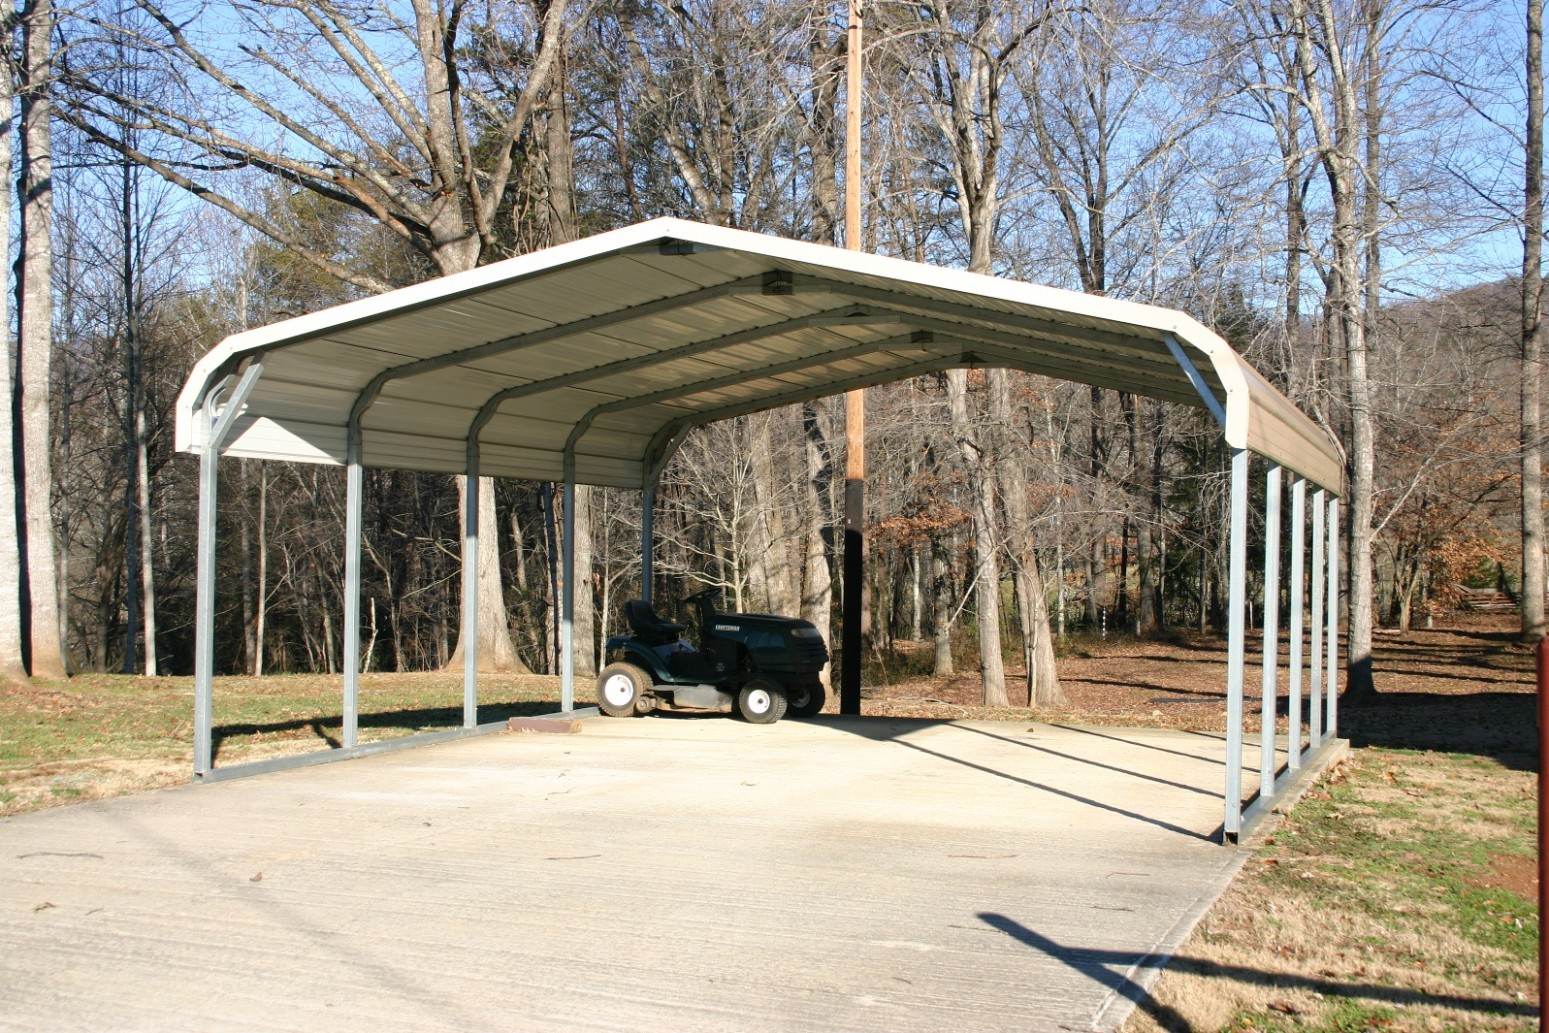 What You Should Wear To Double Car Metal Carports | double car metal carports